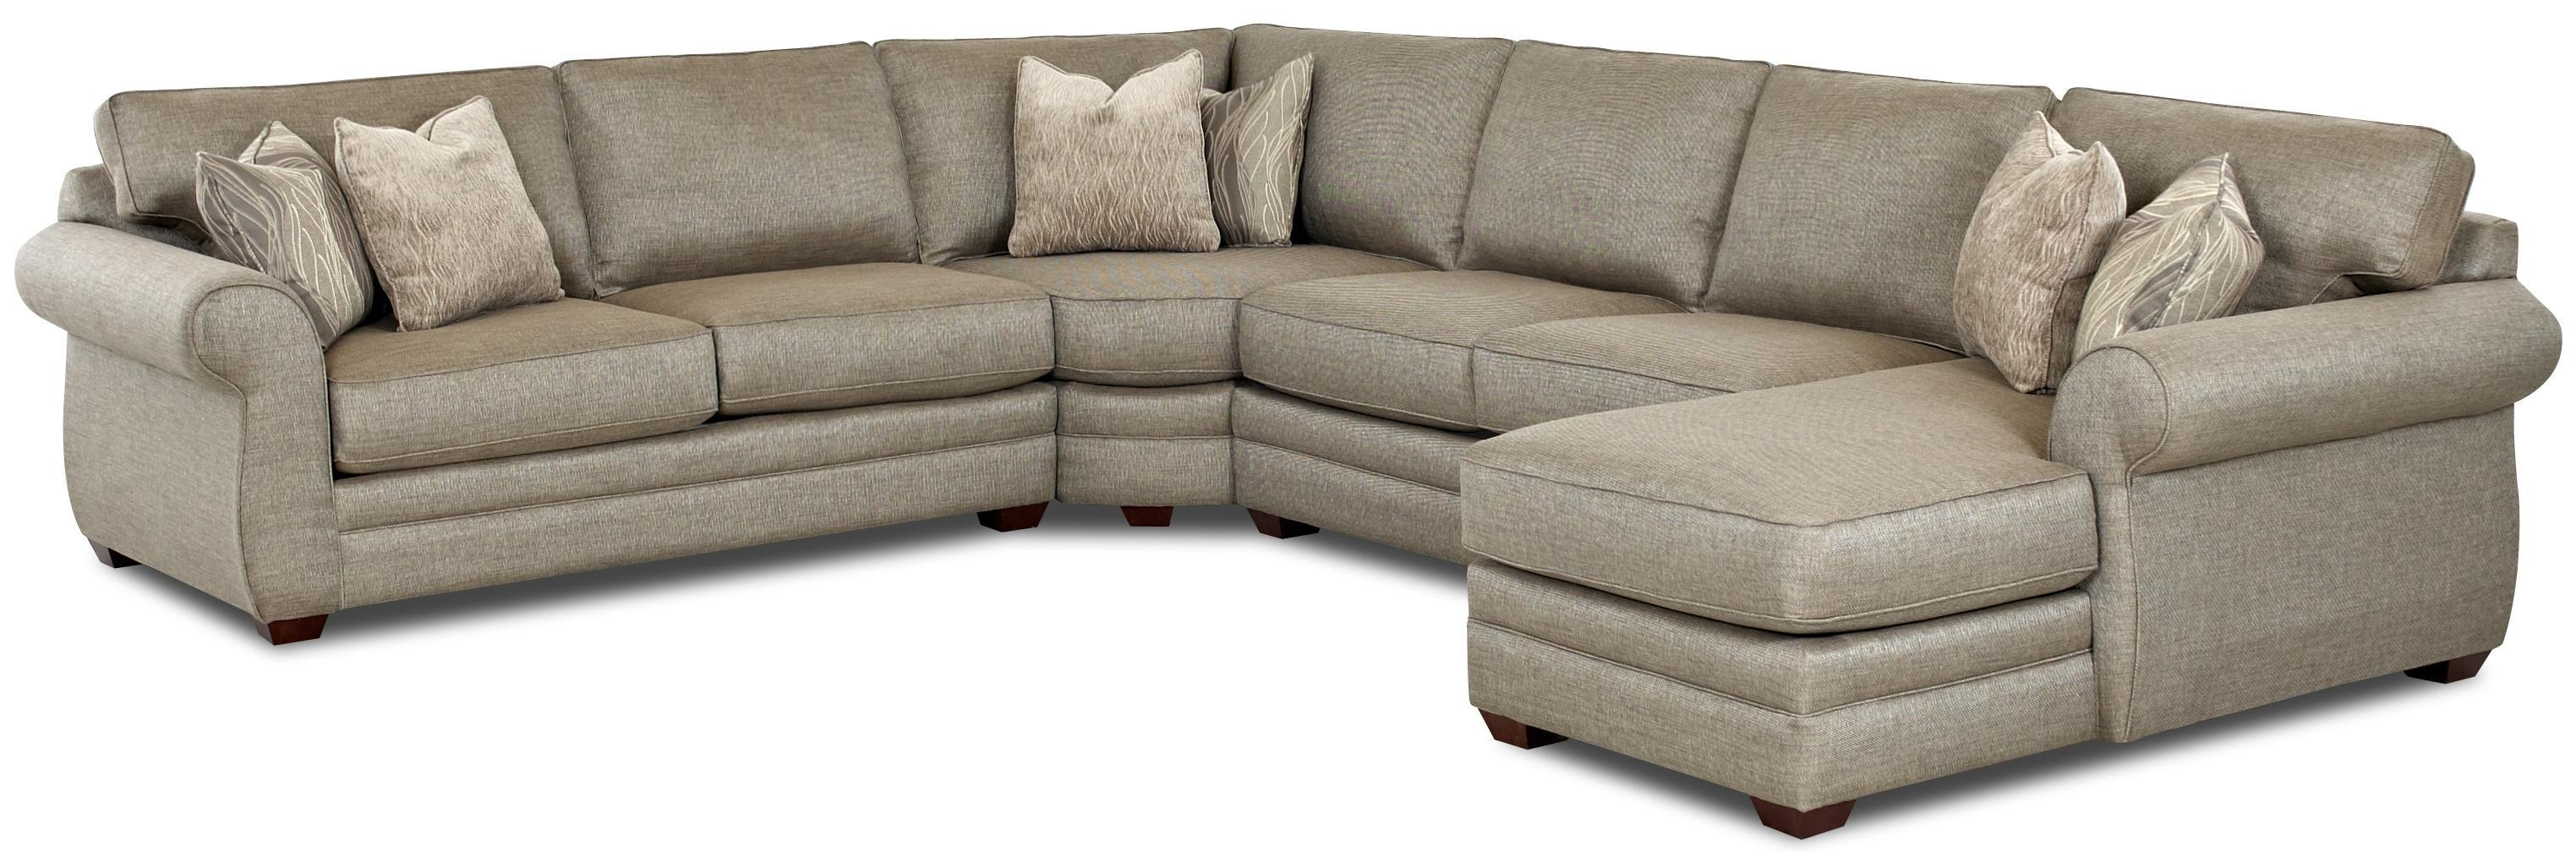 Astonishing Sleeper Sectional Sofas With Chaise 14 With Additional Intended For Sectional With Recliner And Sleeper (View 18 of 20)